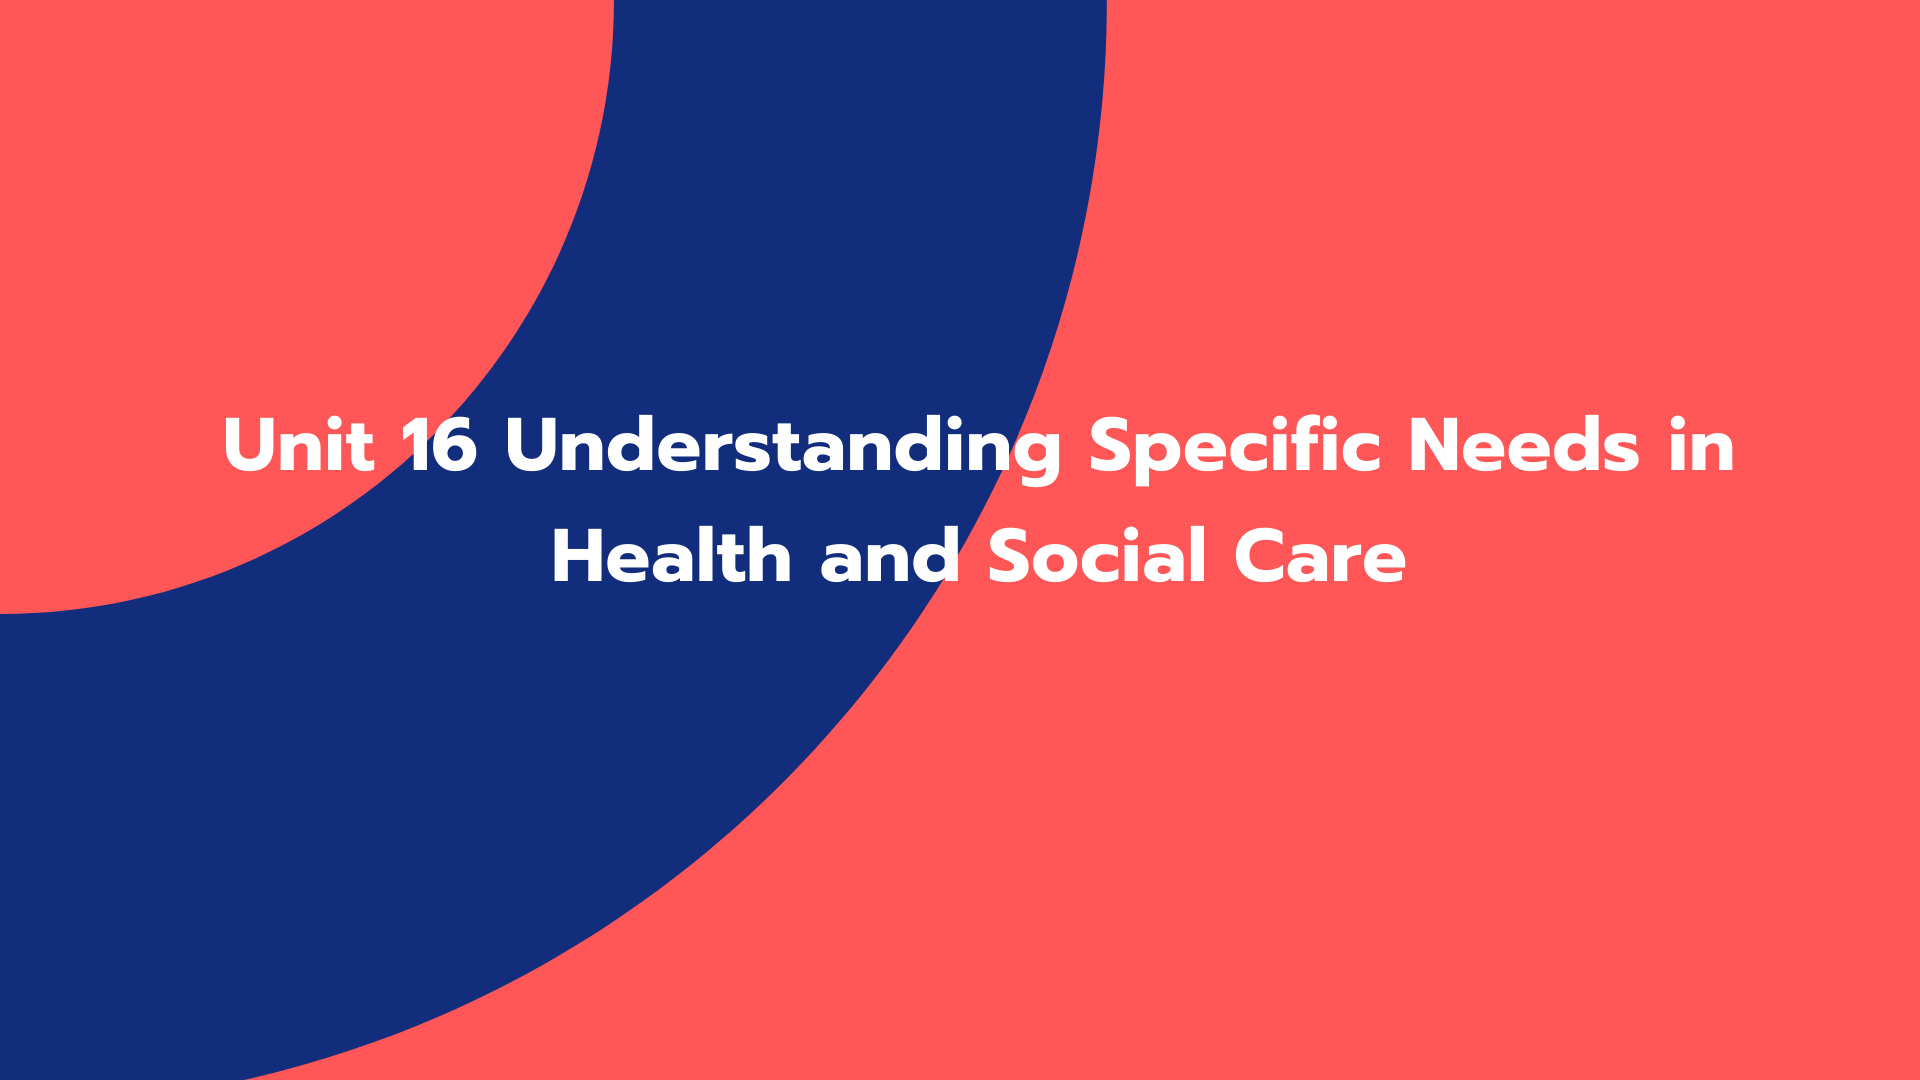 Unit 16 Understanding Specific Needs in Health and Social Care